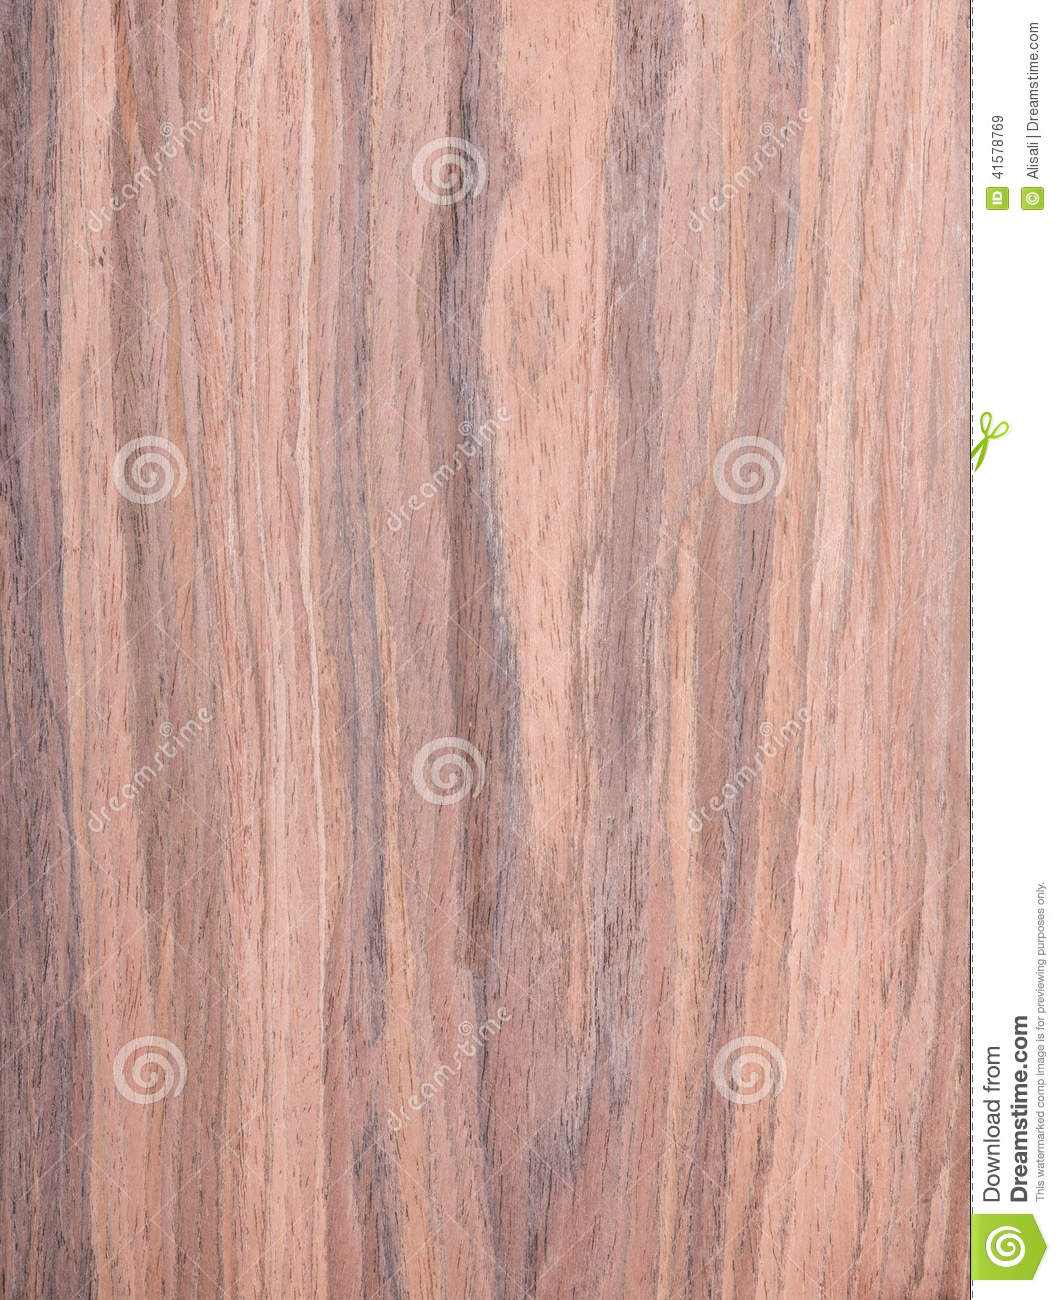 Walnut, Wood Grain, Natural Rural Tree Background Stock ...